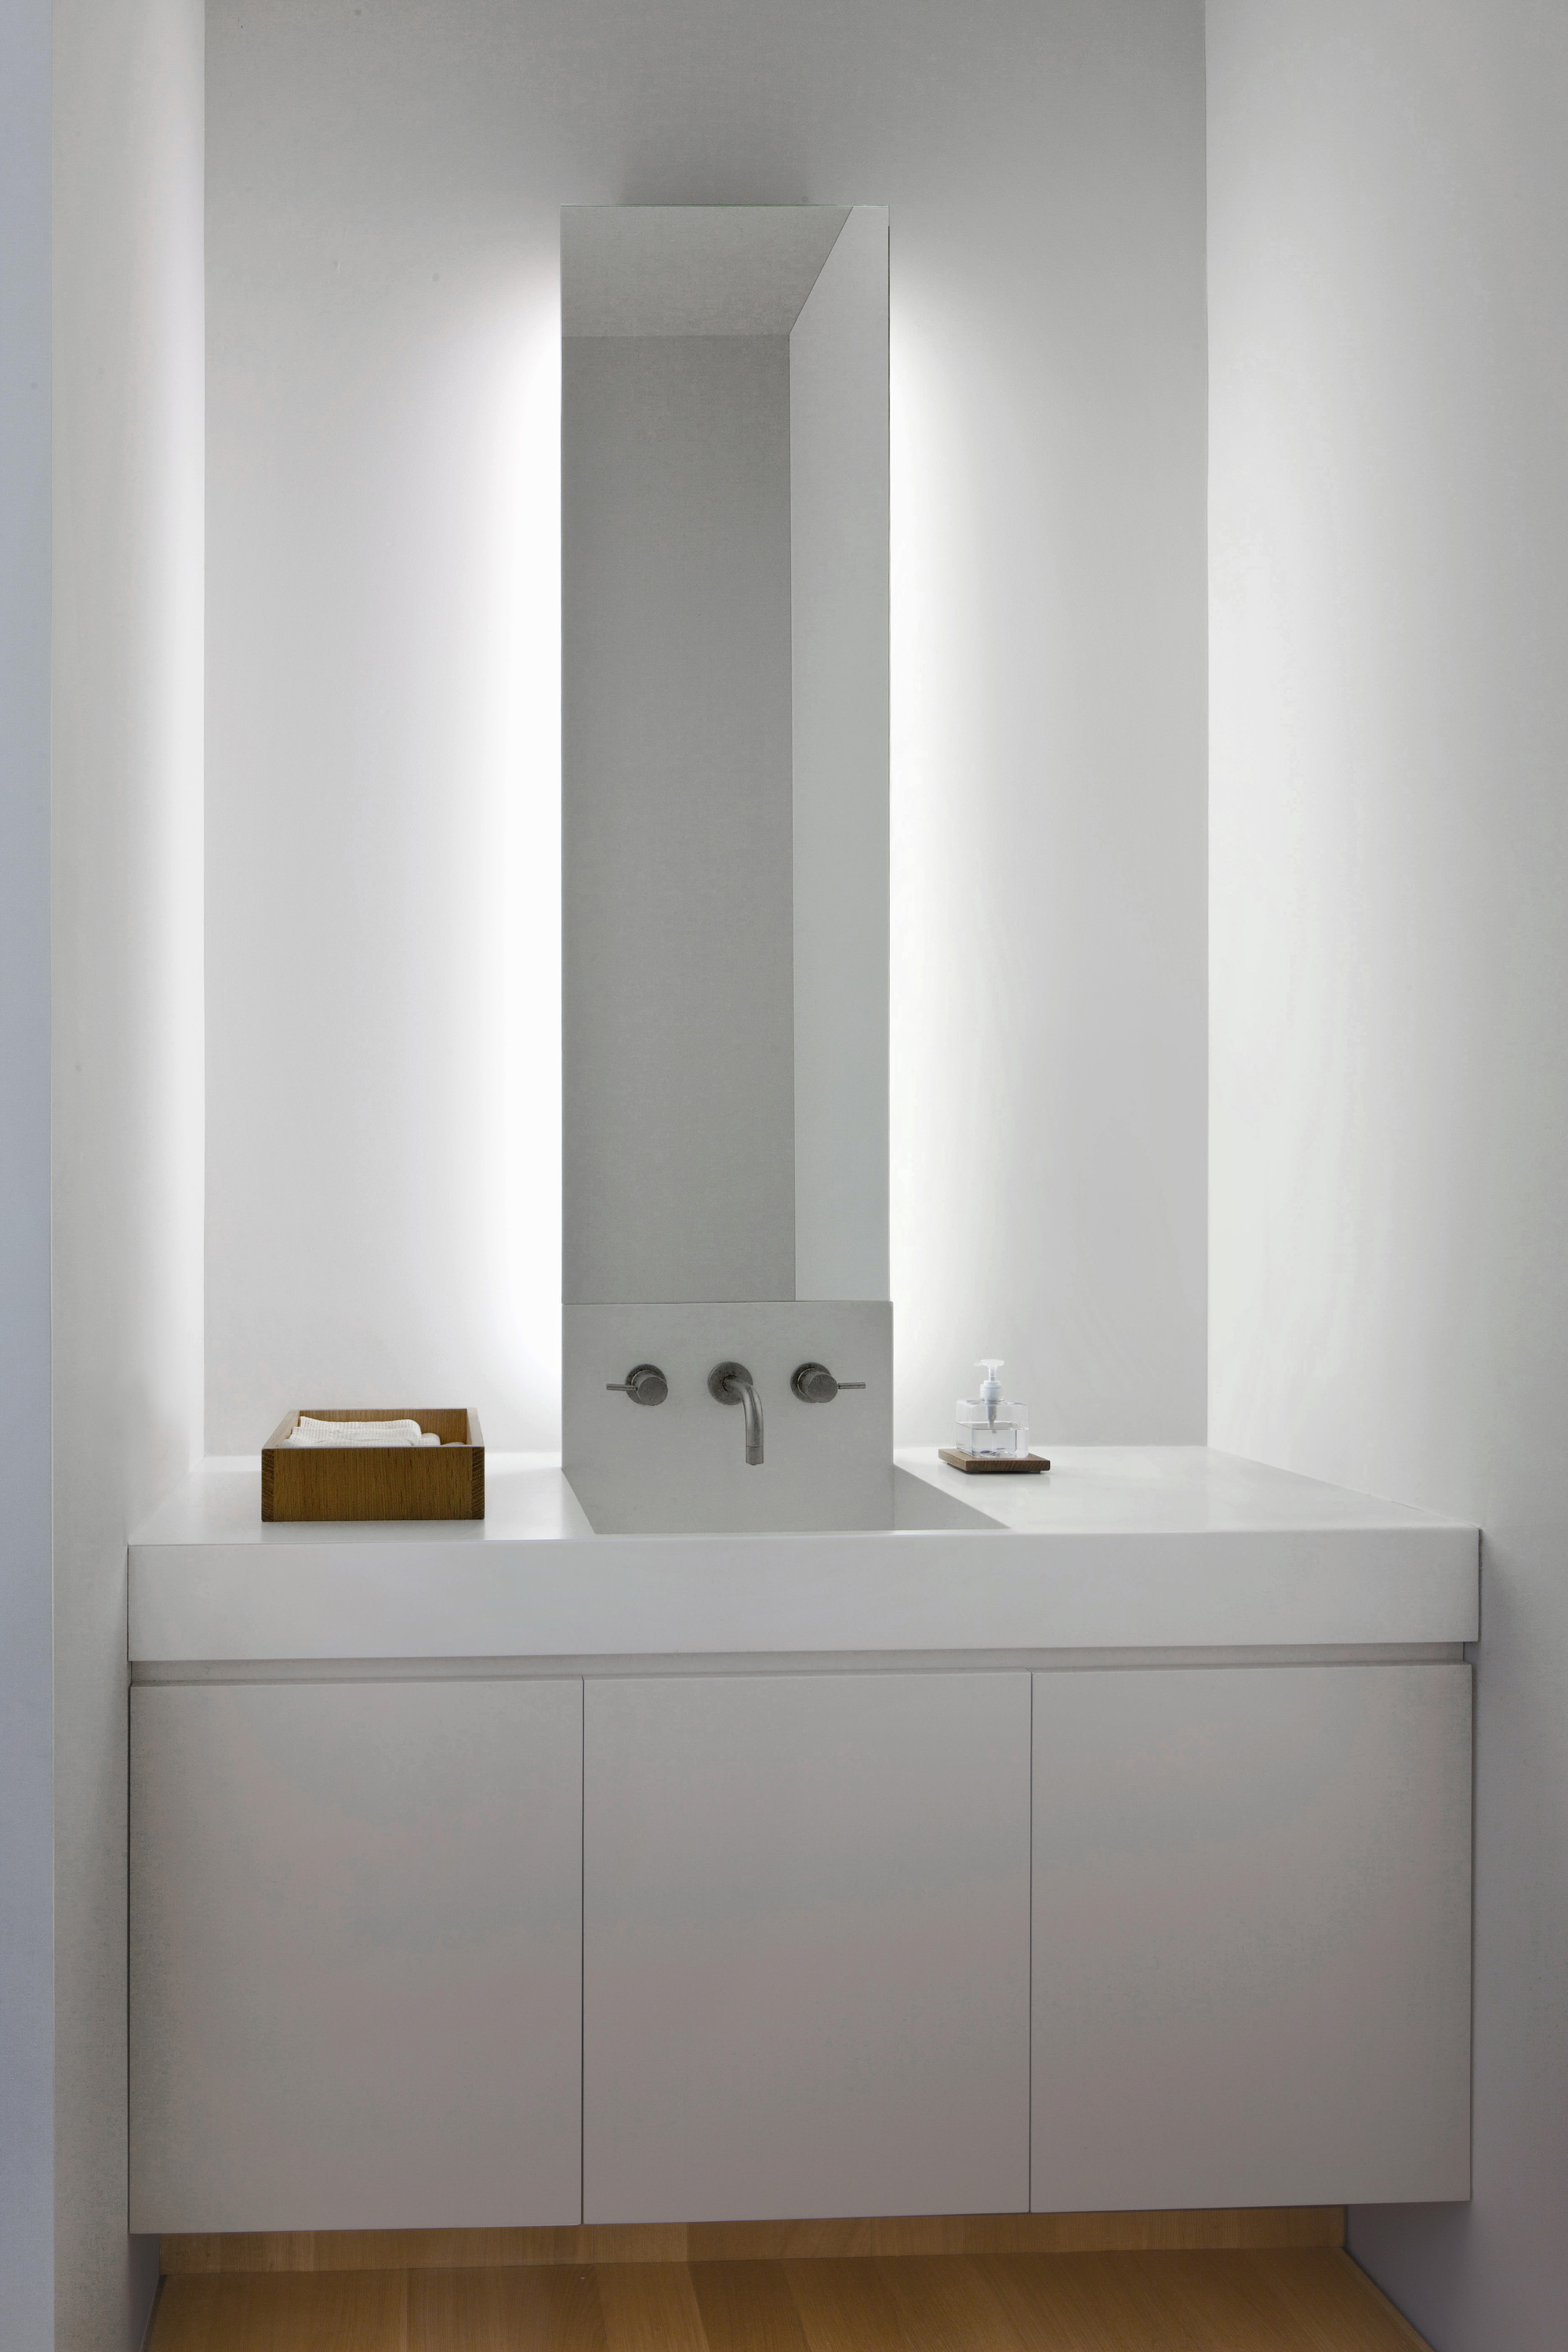 Gallery of fairview townhouse bucchieri architects 8 for Indirecte verlichting toilet